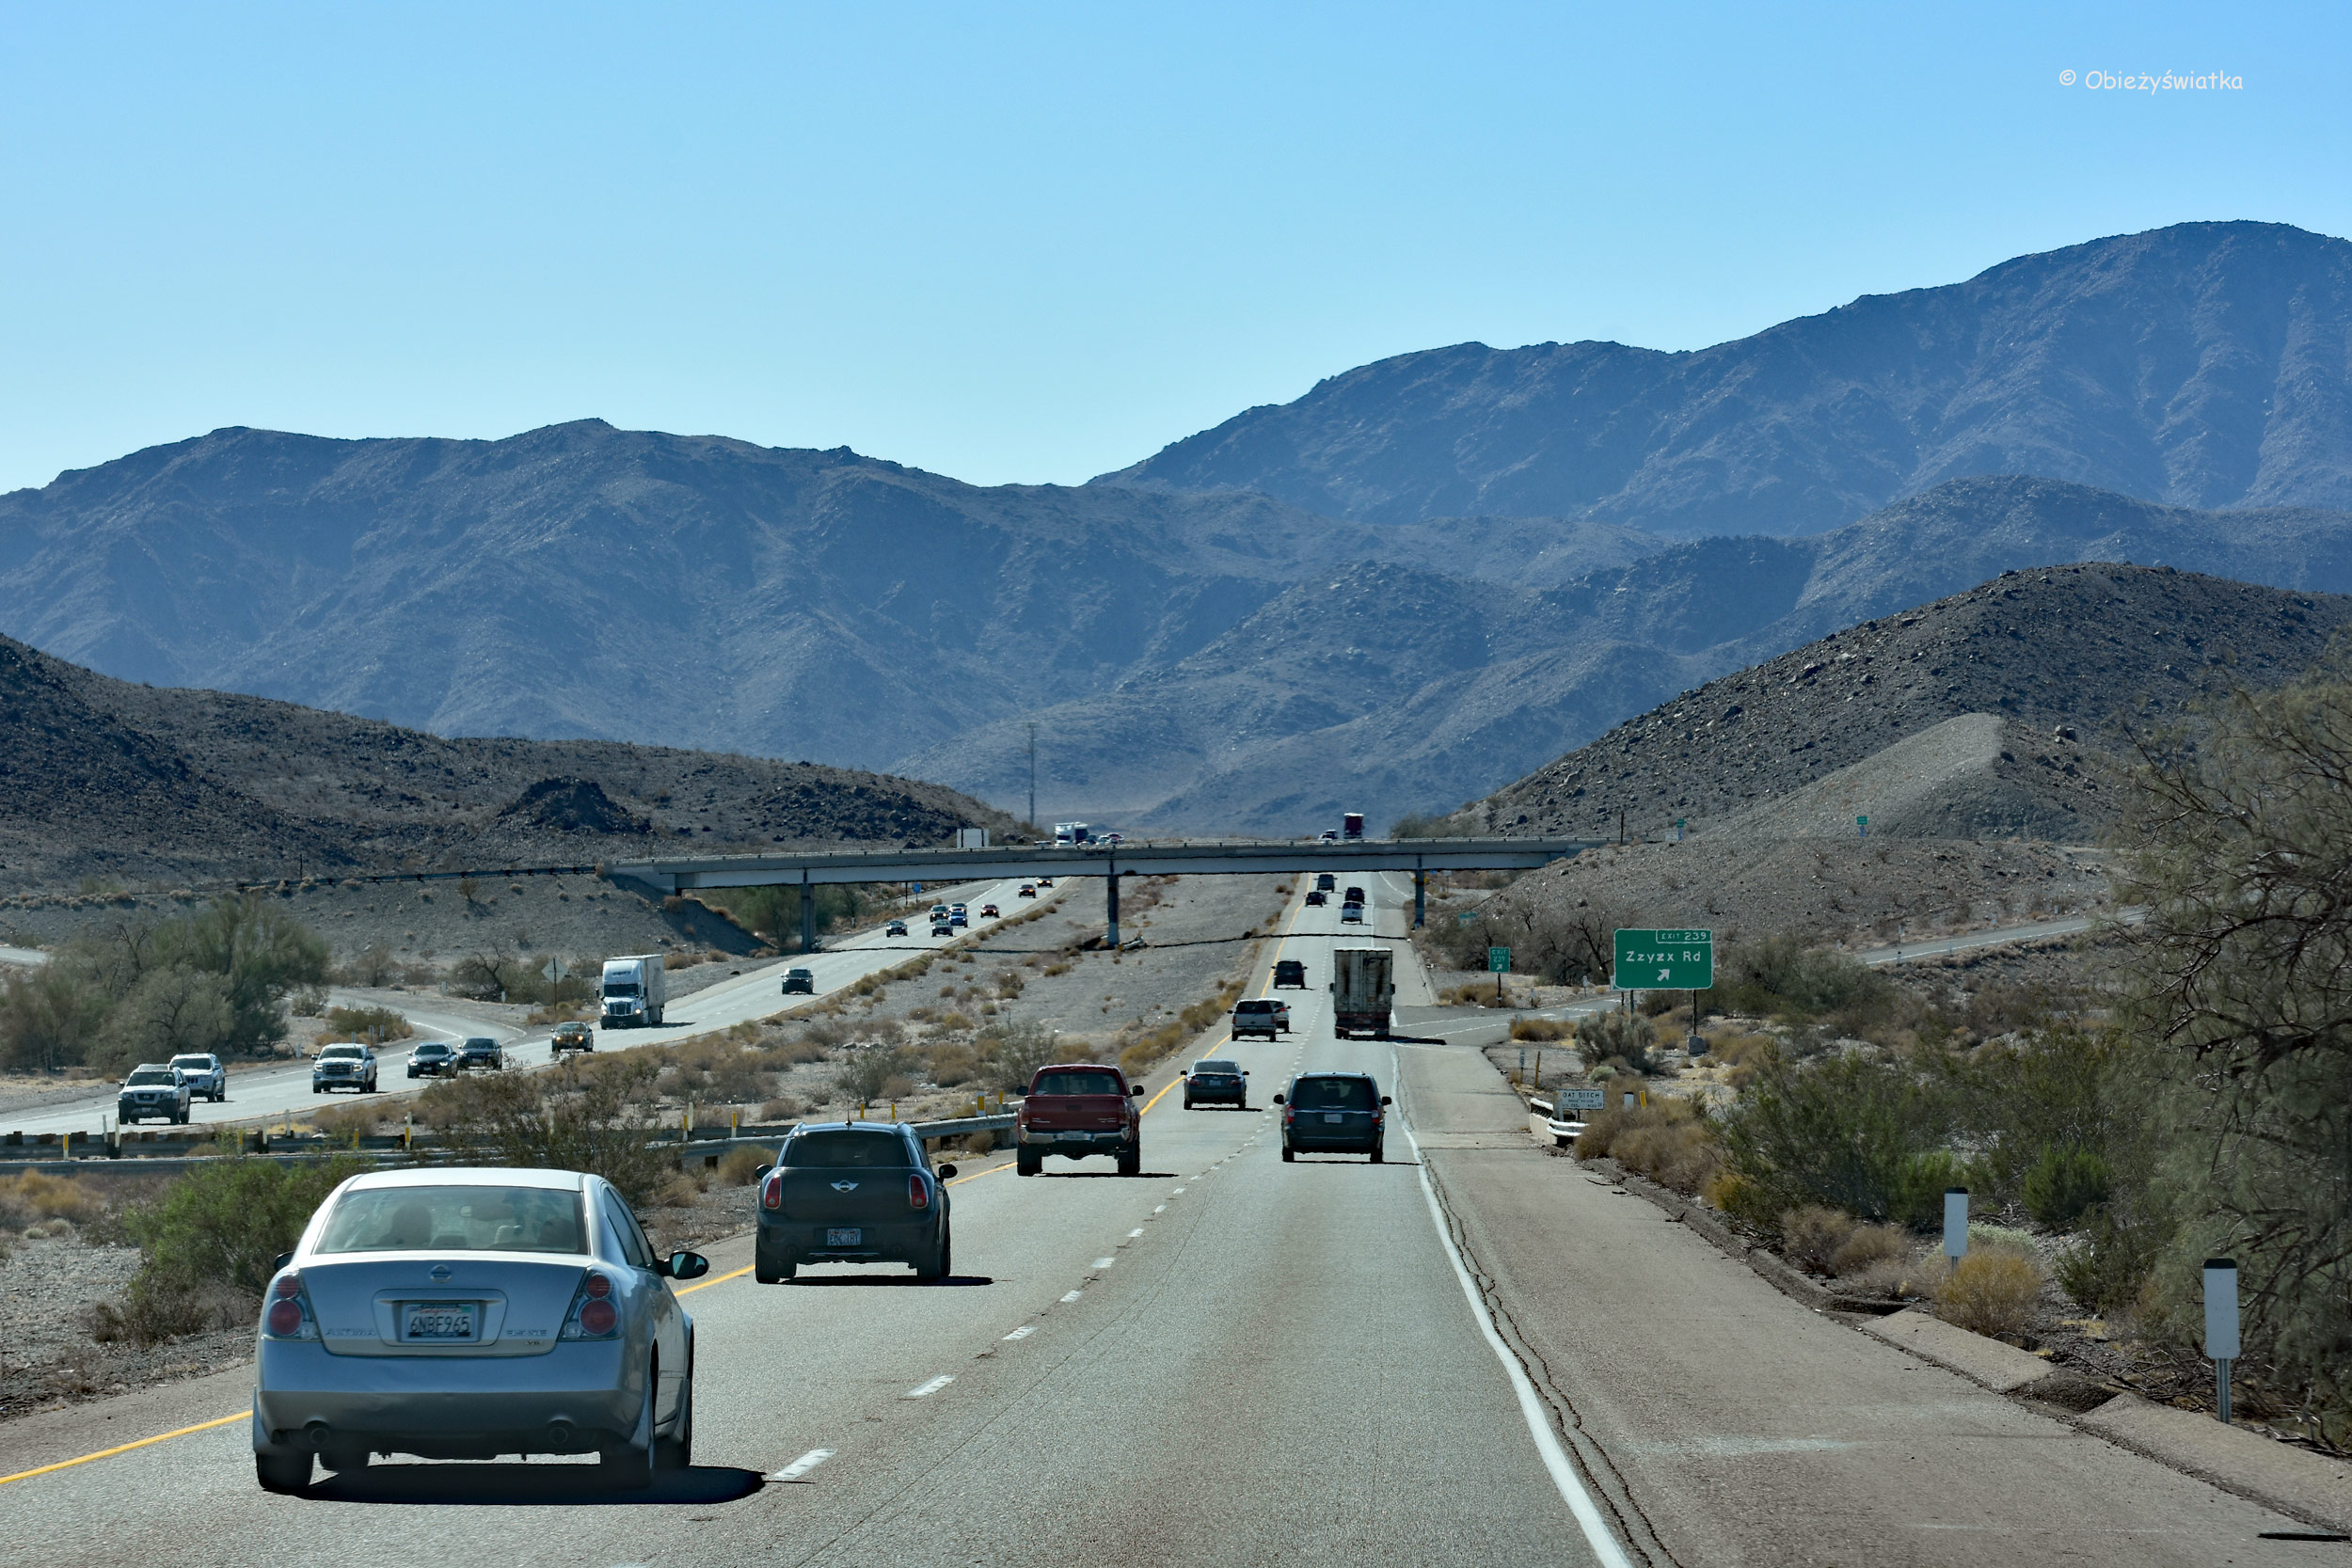 Interstate 15, Zjazd Zzyzx Rd, Kalifornia, USA